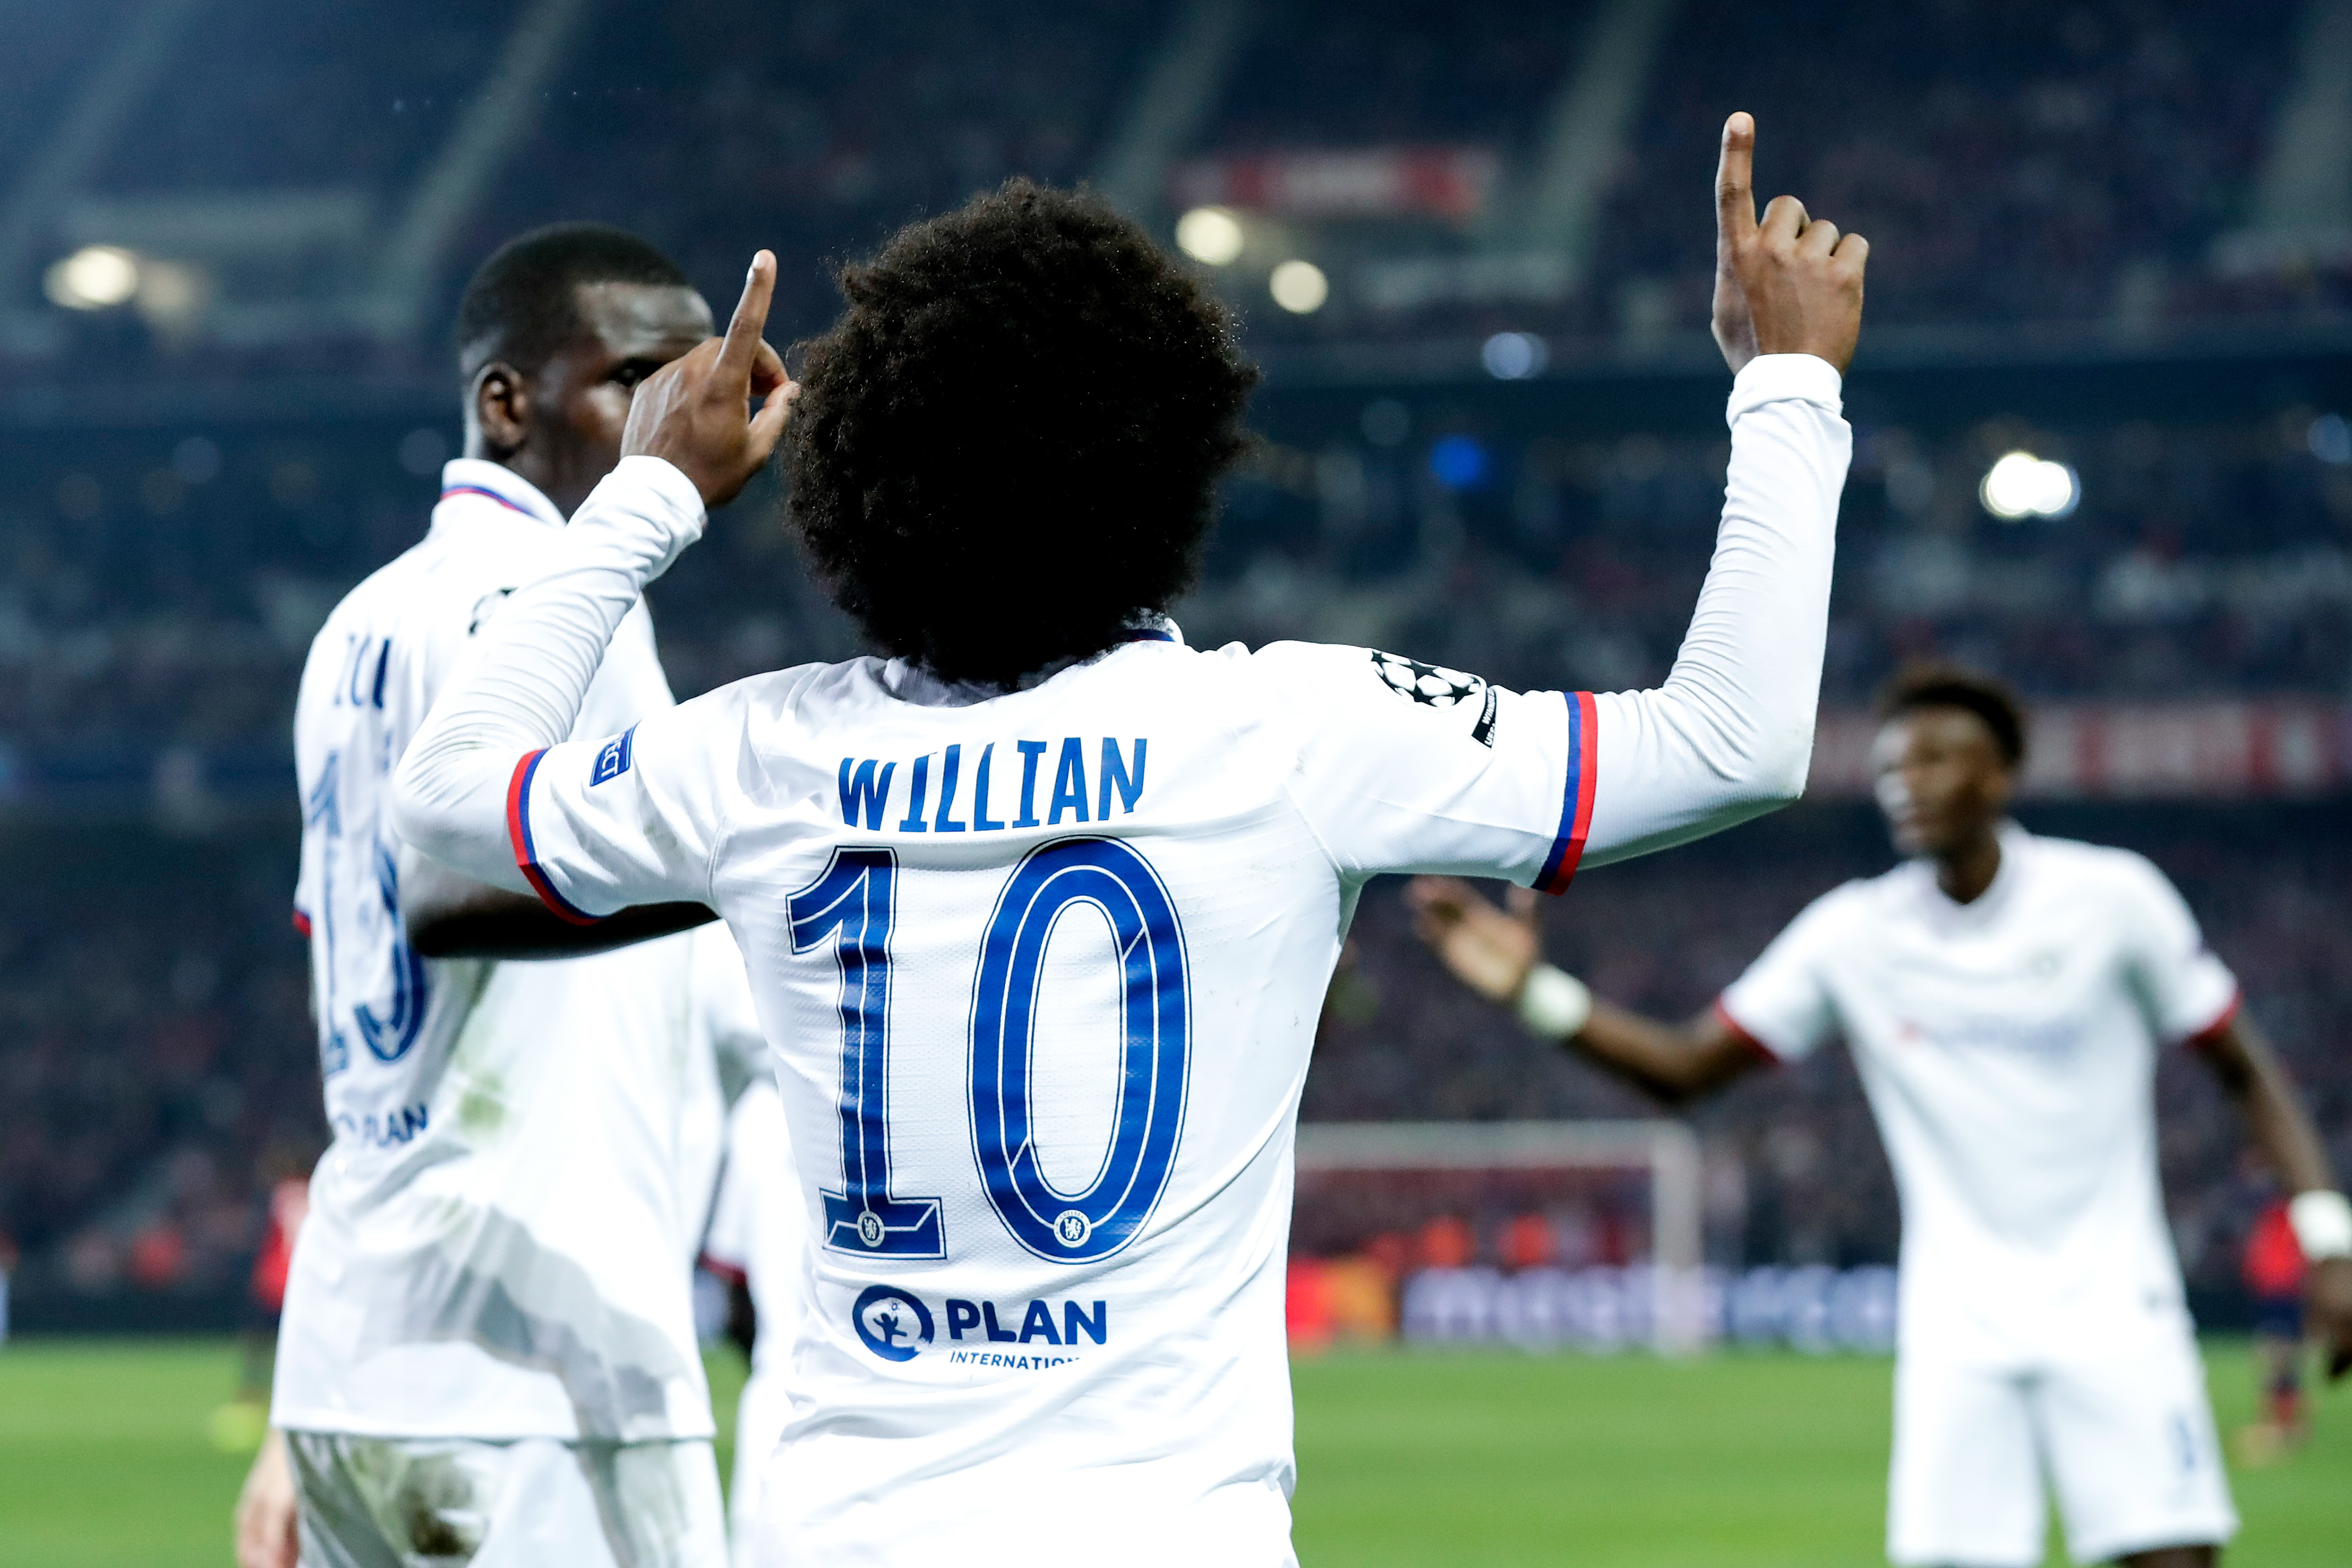 Willian proud to enter 300 Club and leave his mark in Chelsea history